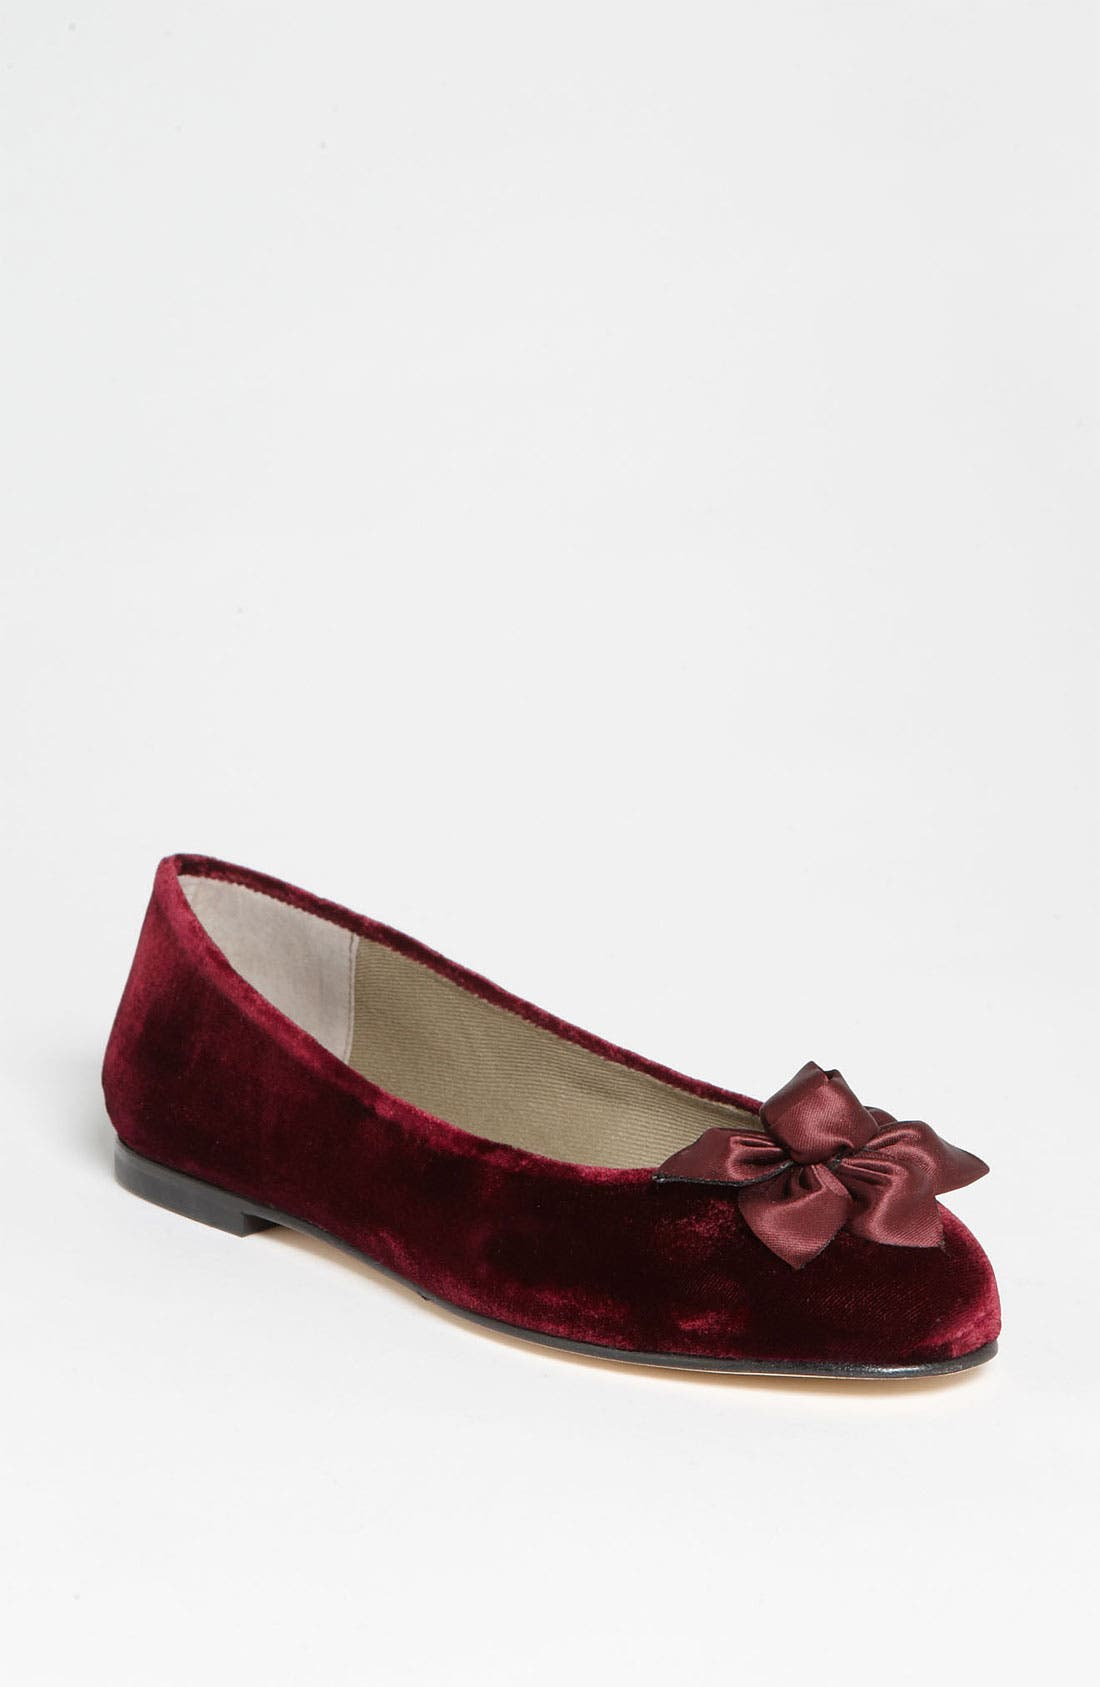 Alternate Image 1 Selected - French Sole 'Gorgeous' Ballet Flat